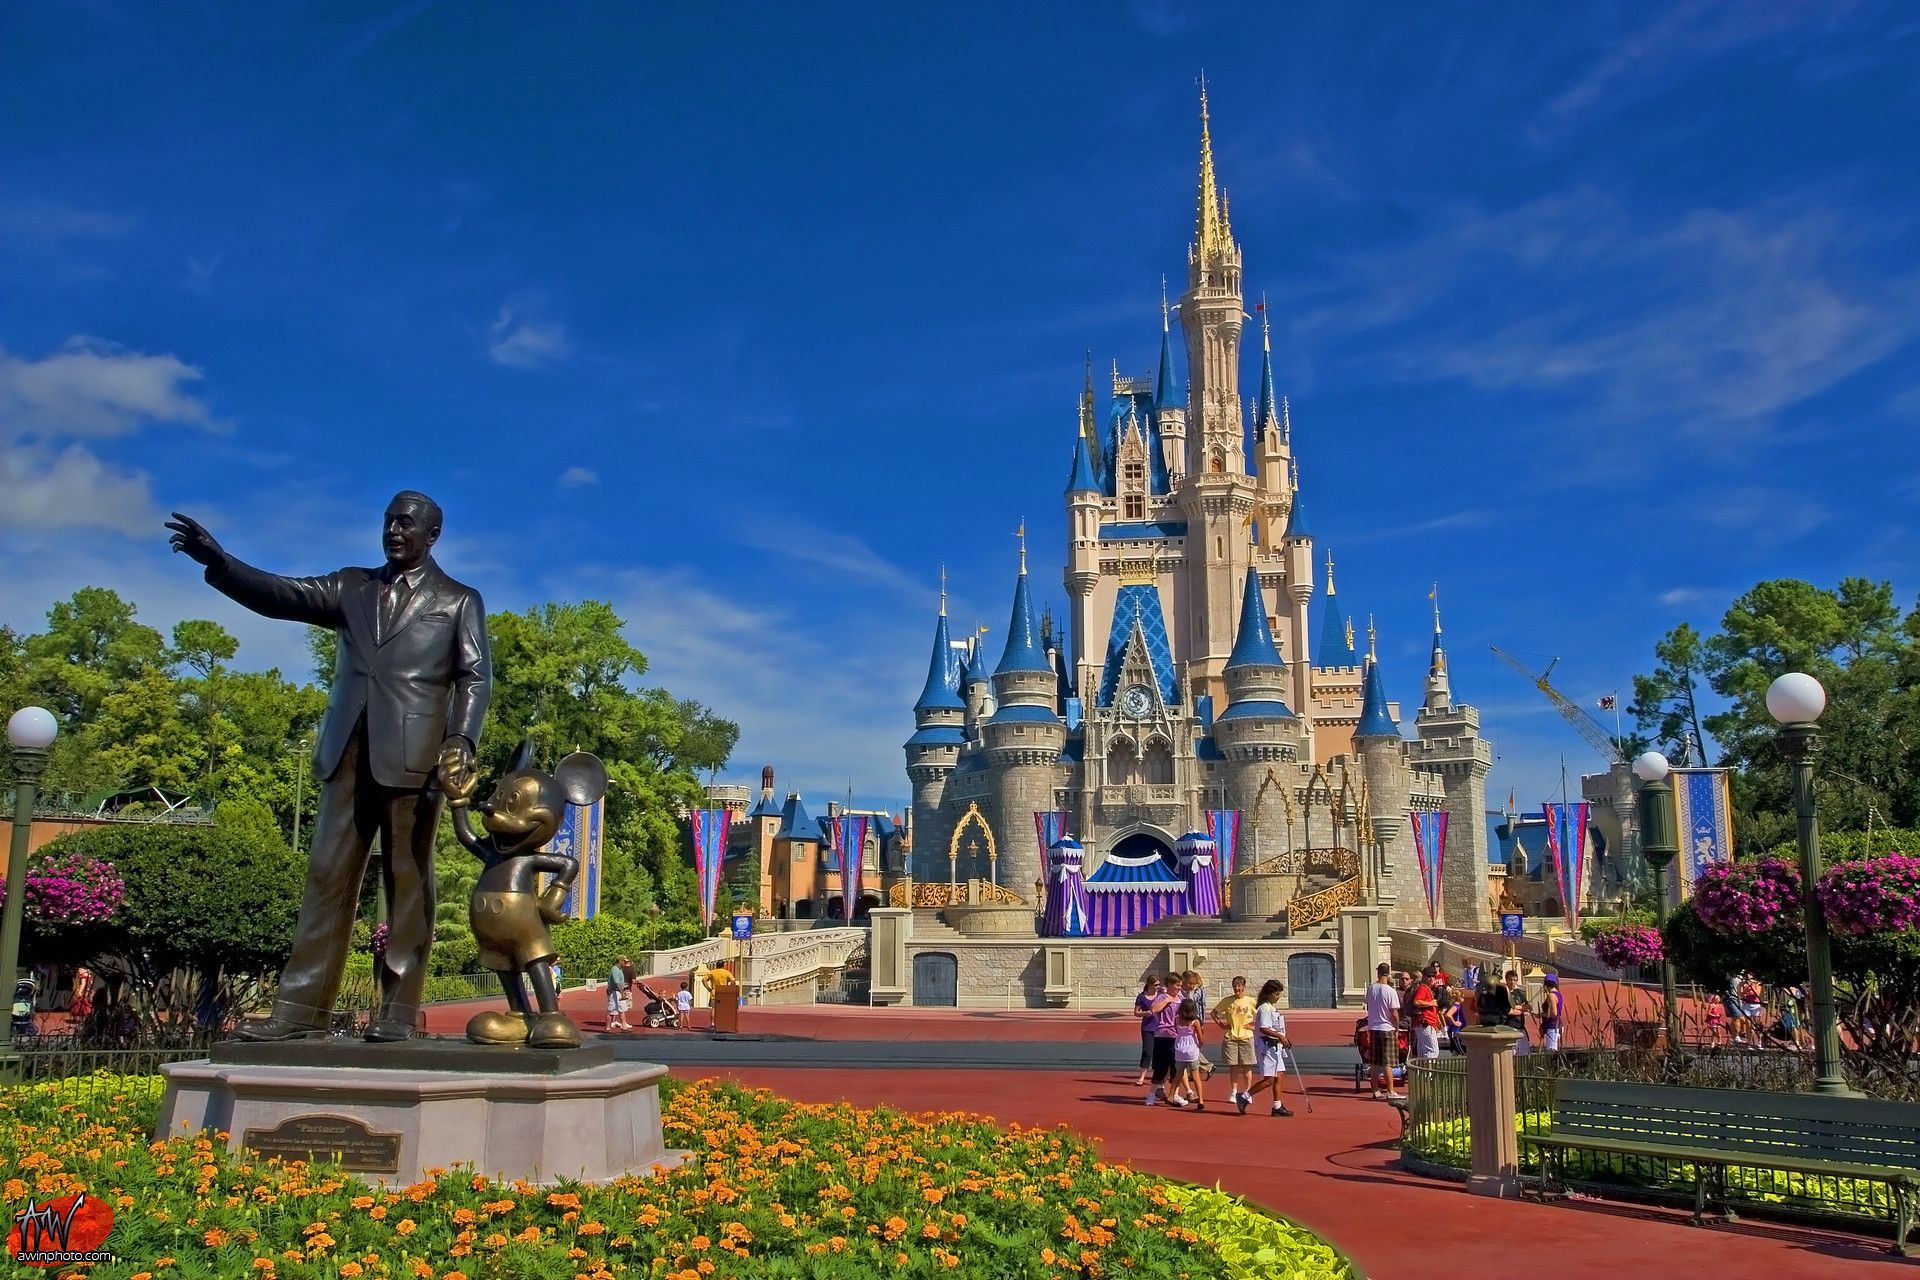 Disney World Wallpapers Top Free Disney World Backgrounds Wallpaperaccess In 2020 Disney World Christmas Disney World Florida Disney World Pictures